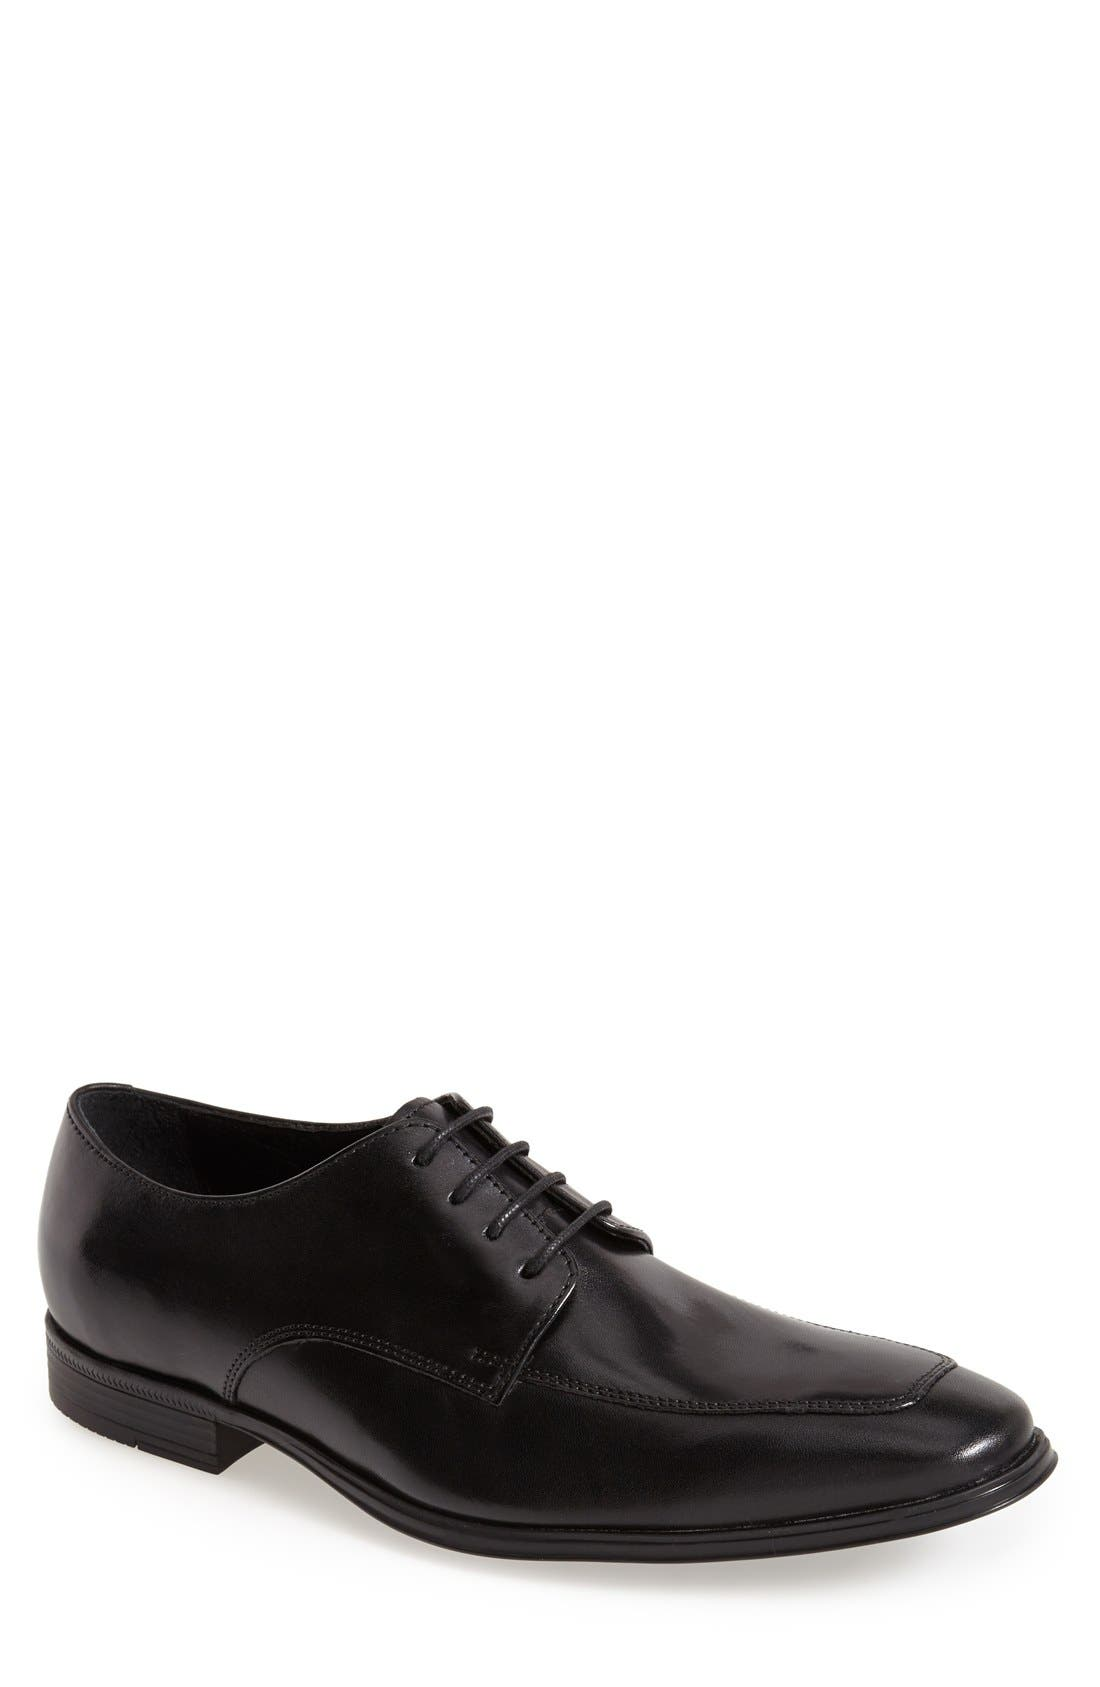 Main Image - Cole Haan 'Air Adams' Oxford (Men) (Online Only)